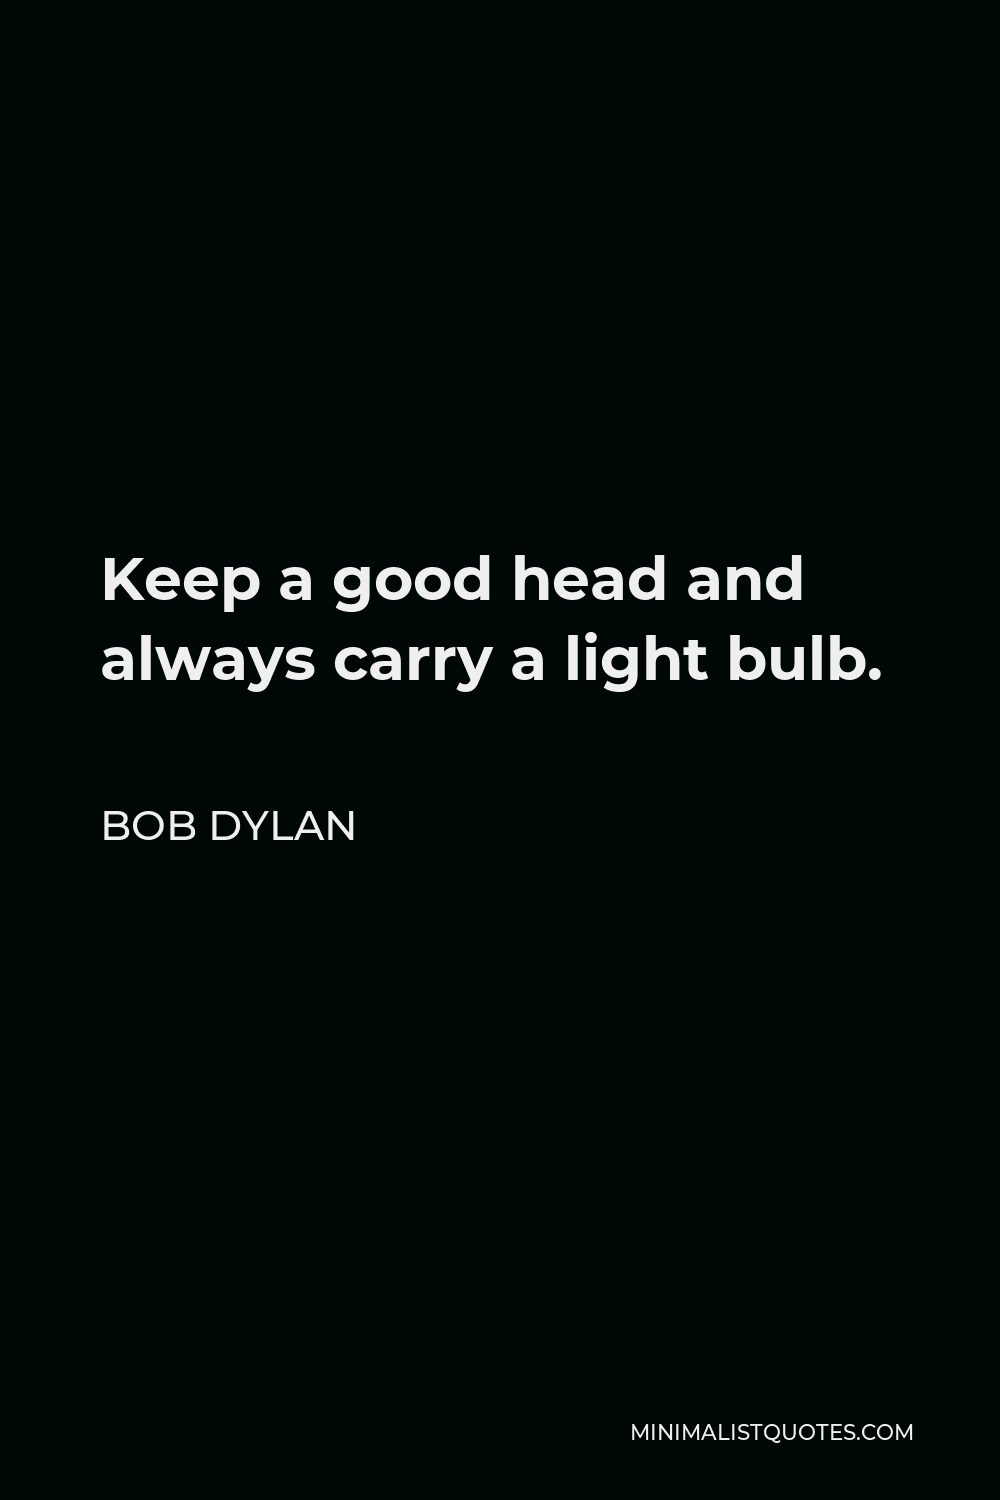 Bob Dylan Quote - Keep a good head and always carry a light bulb.